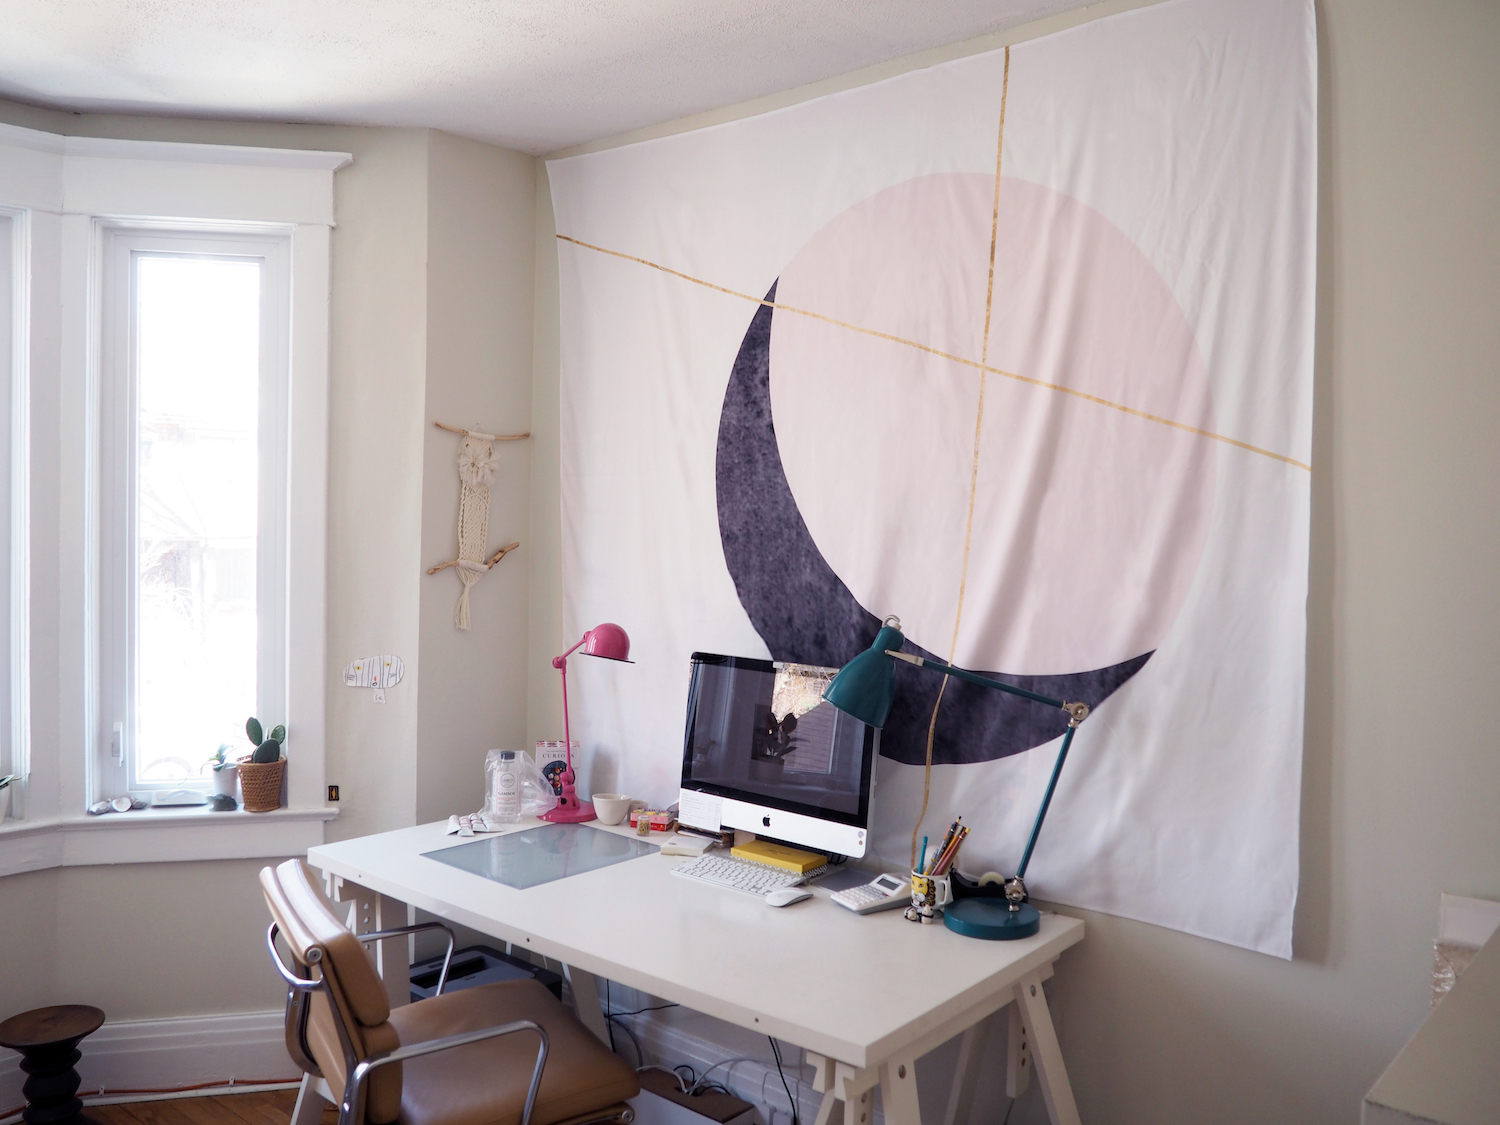 How To Hang Wall Tapestry fieldguided shows us 5 dreamy ways to use wall tapestries